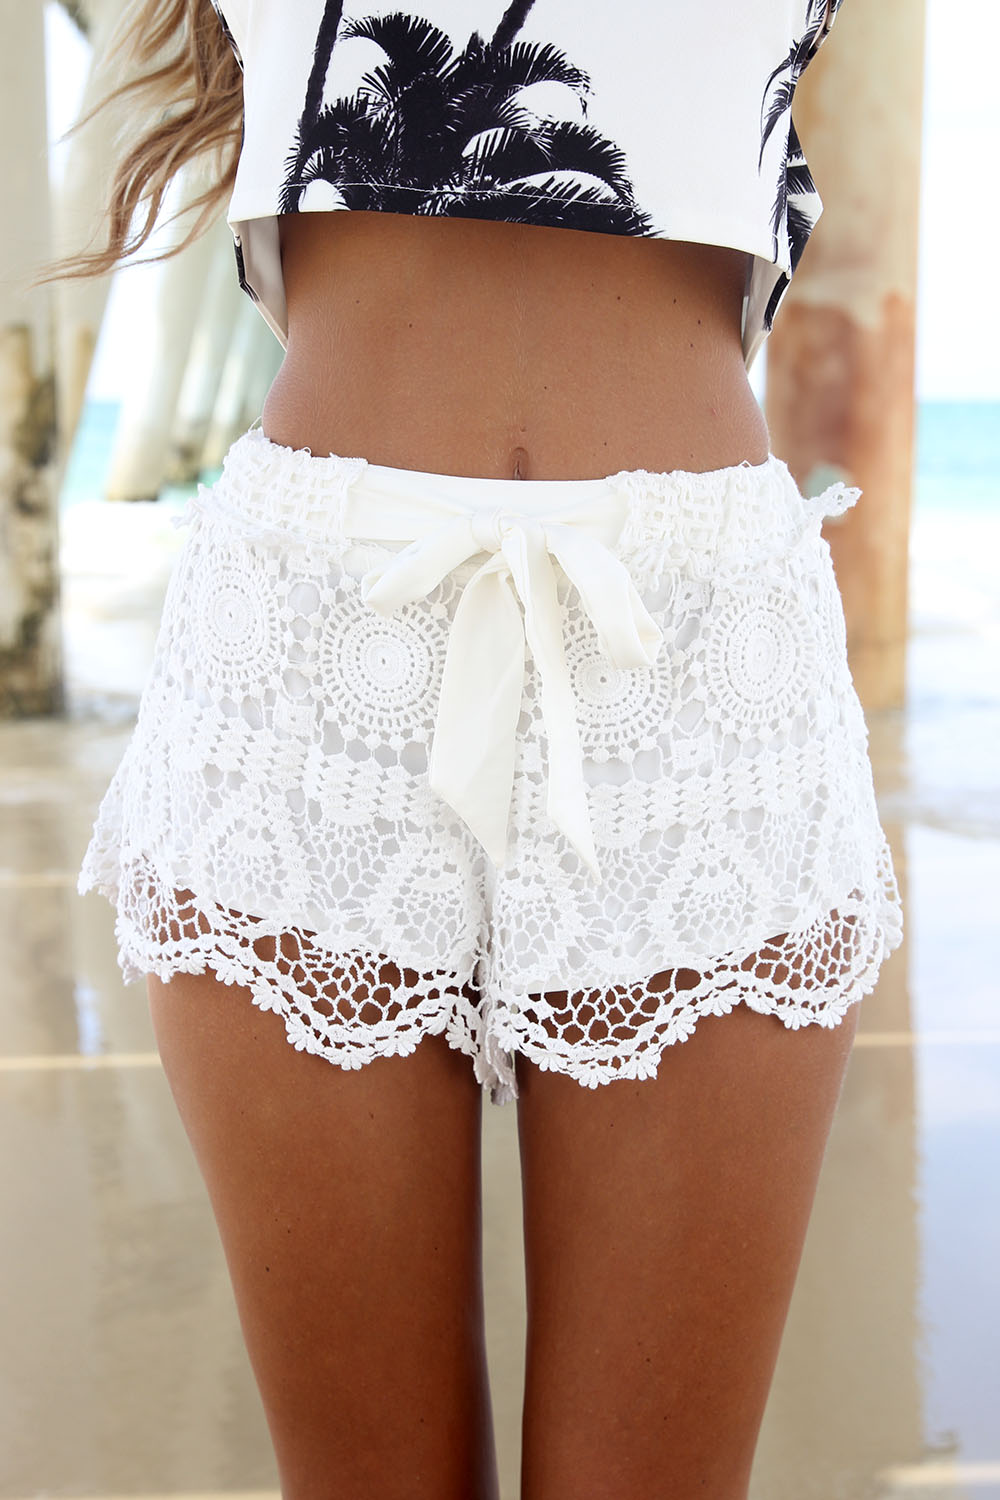 Milla Crochet Shorts - White SABO SKIRT